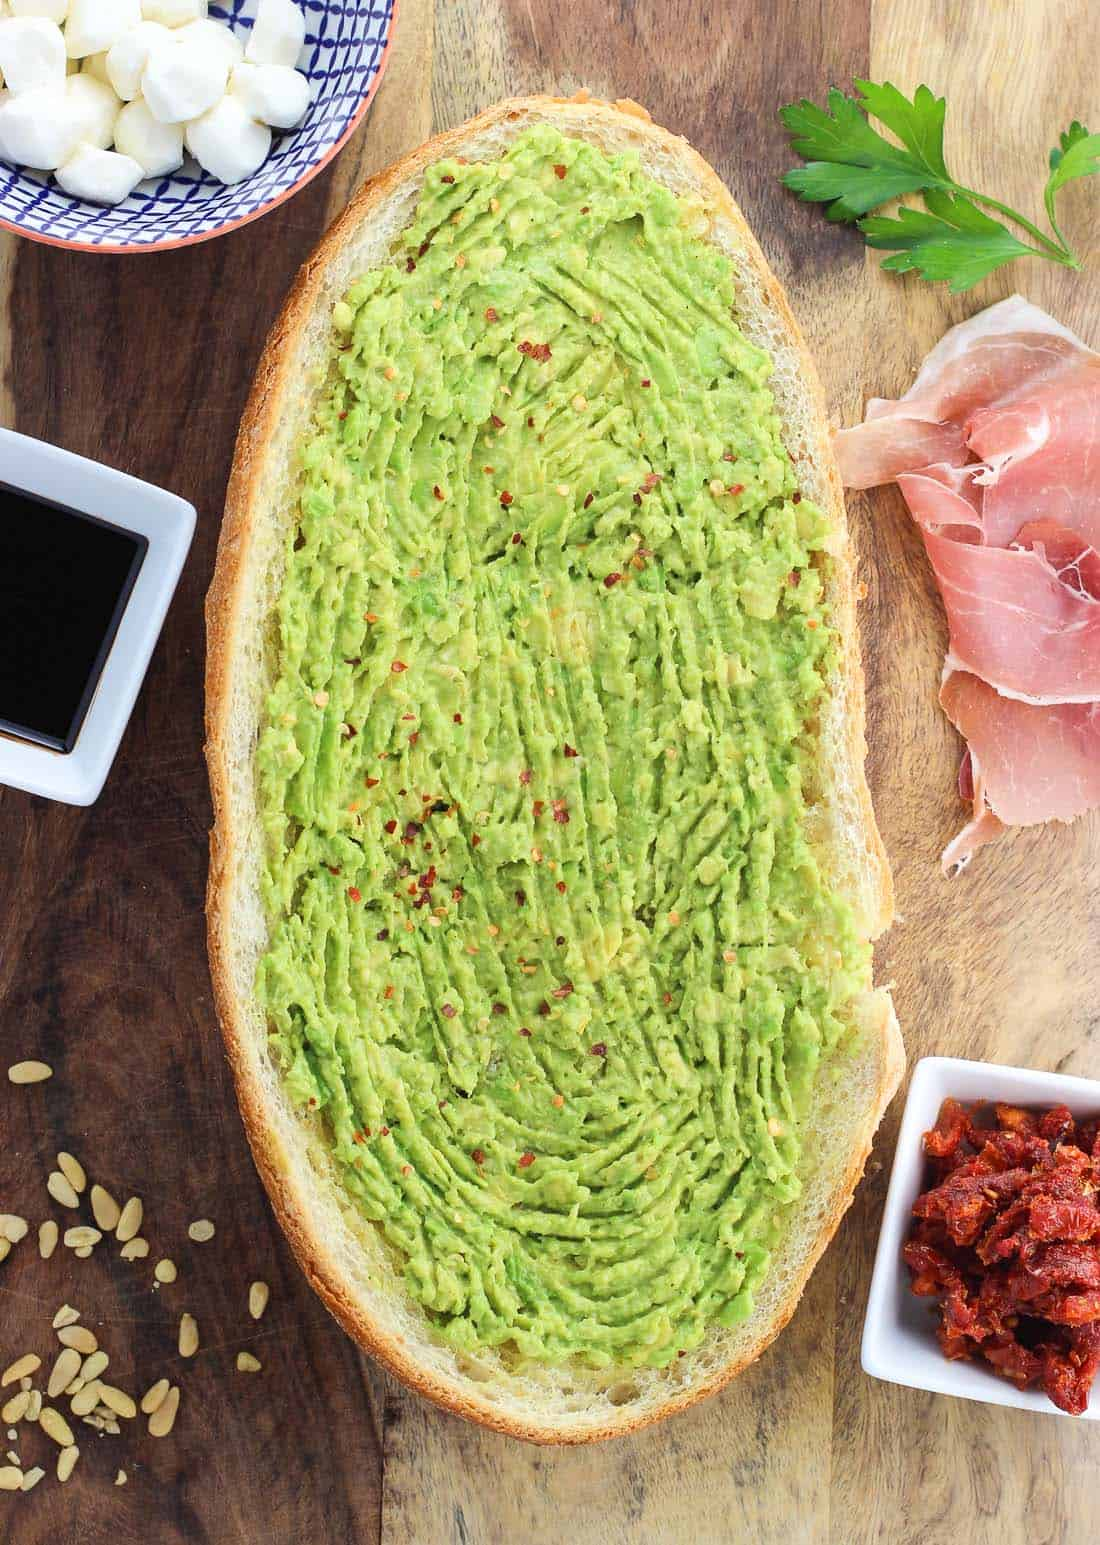 Mashed avocado on a half-loaf of garlic bread on a wooden board surrounded by toppings